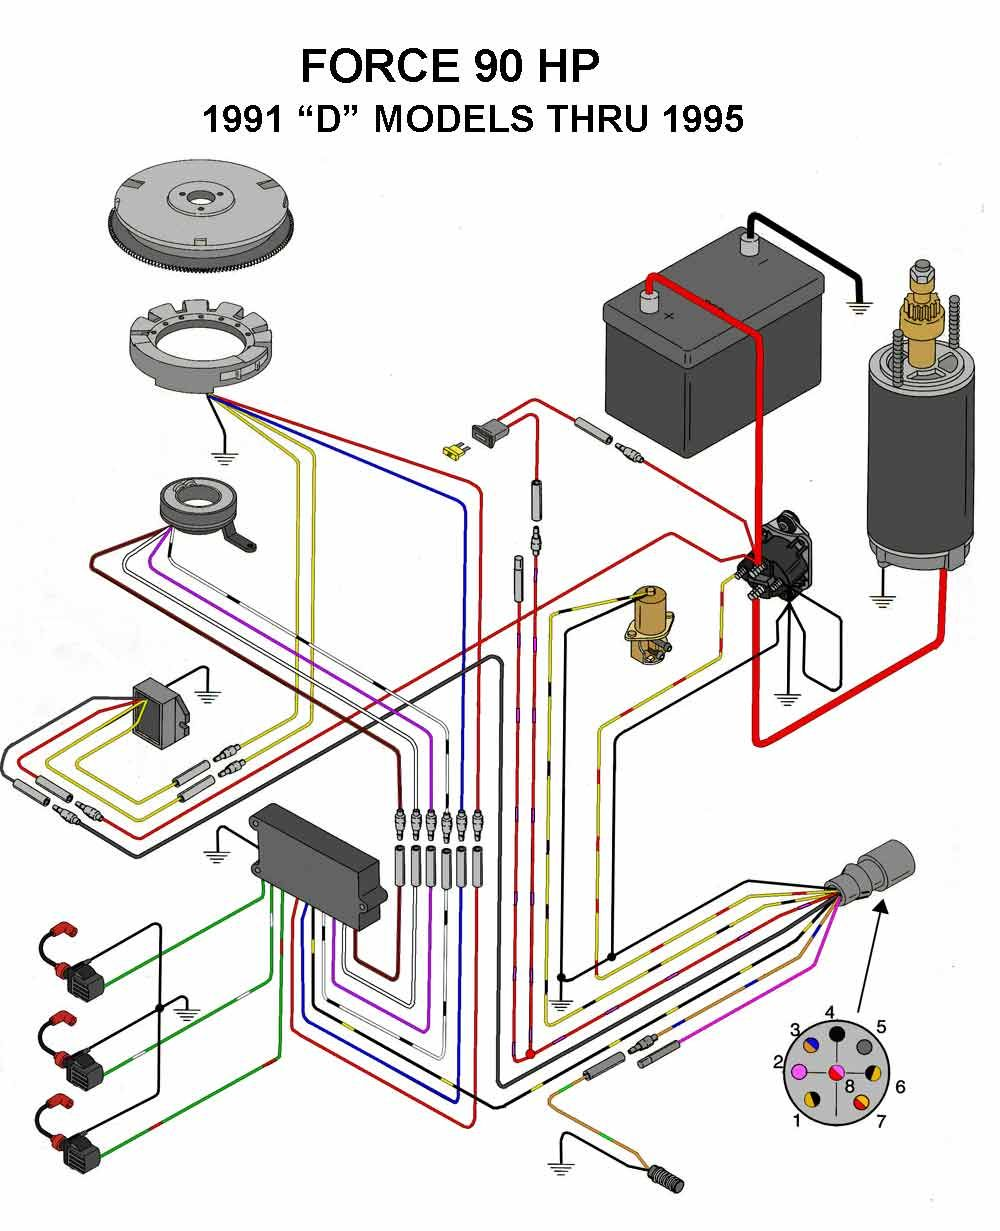 wiring engine ignition system schematic ignition systems wiring engine ignition system schematic